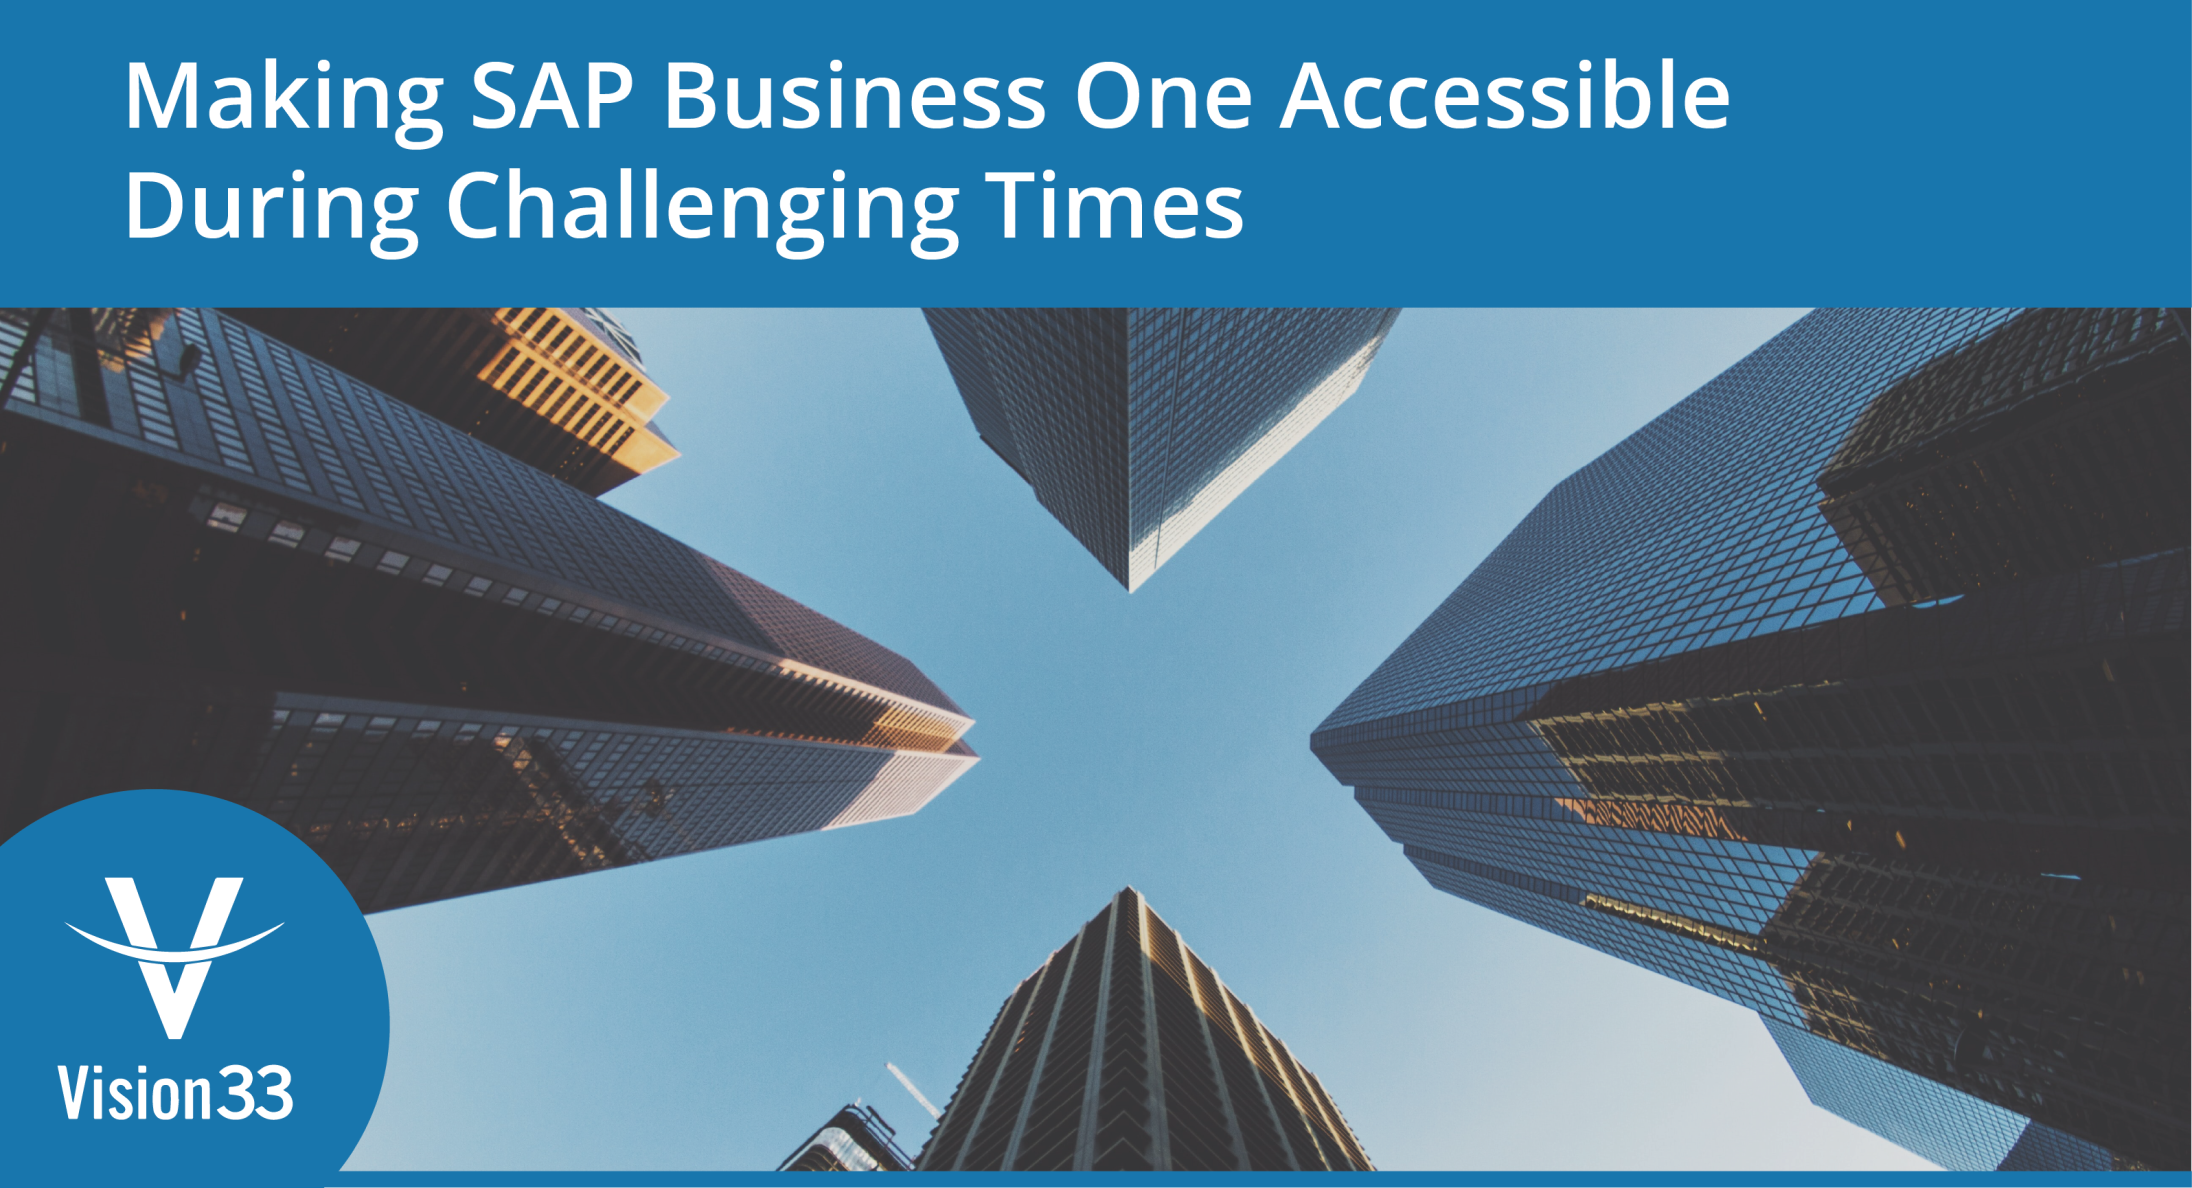 Making-SAP-Busines-One-Accessible-During-Challenging-Times-no-btn